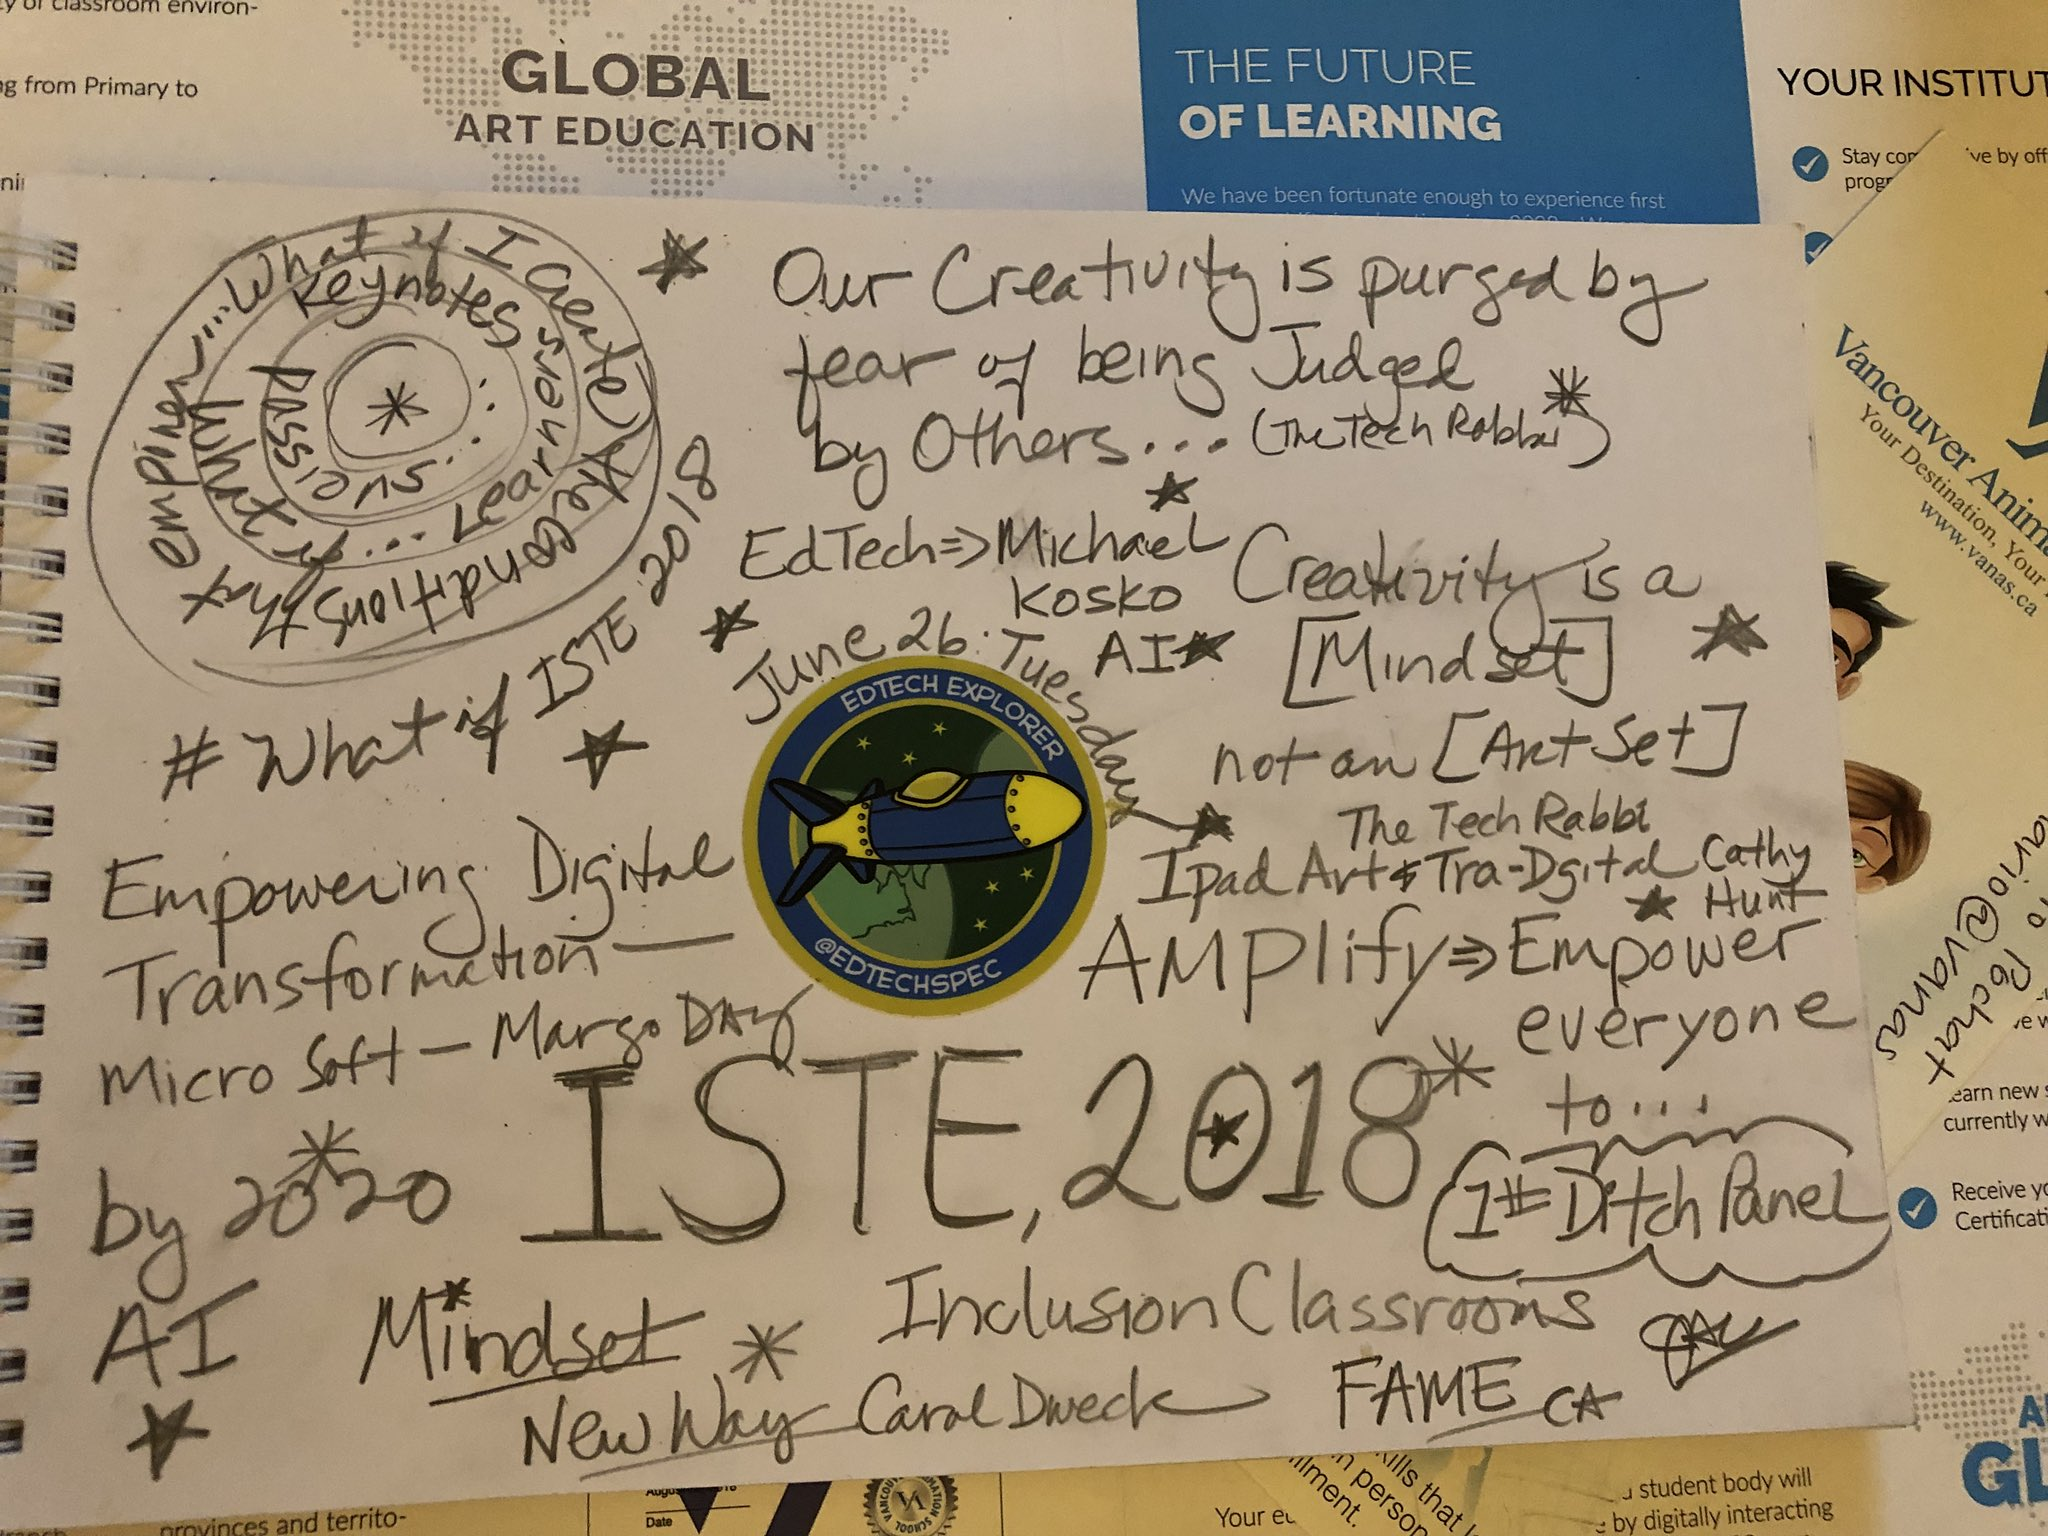 Reflection of MY ISTE DAY2 : June 26, Tuesday #ISTE2018 https://t.co/HKckPh8ovE